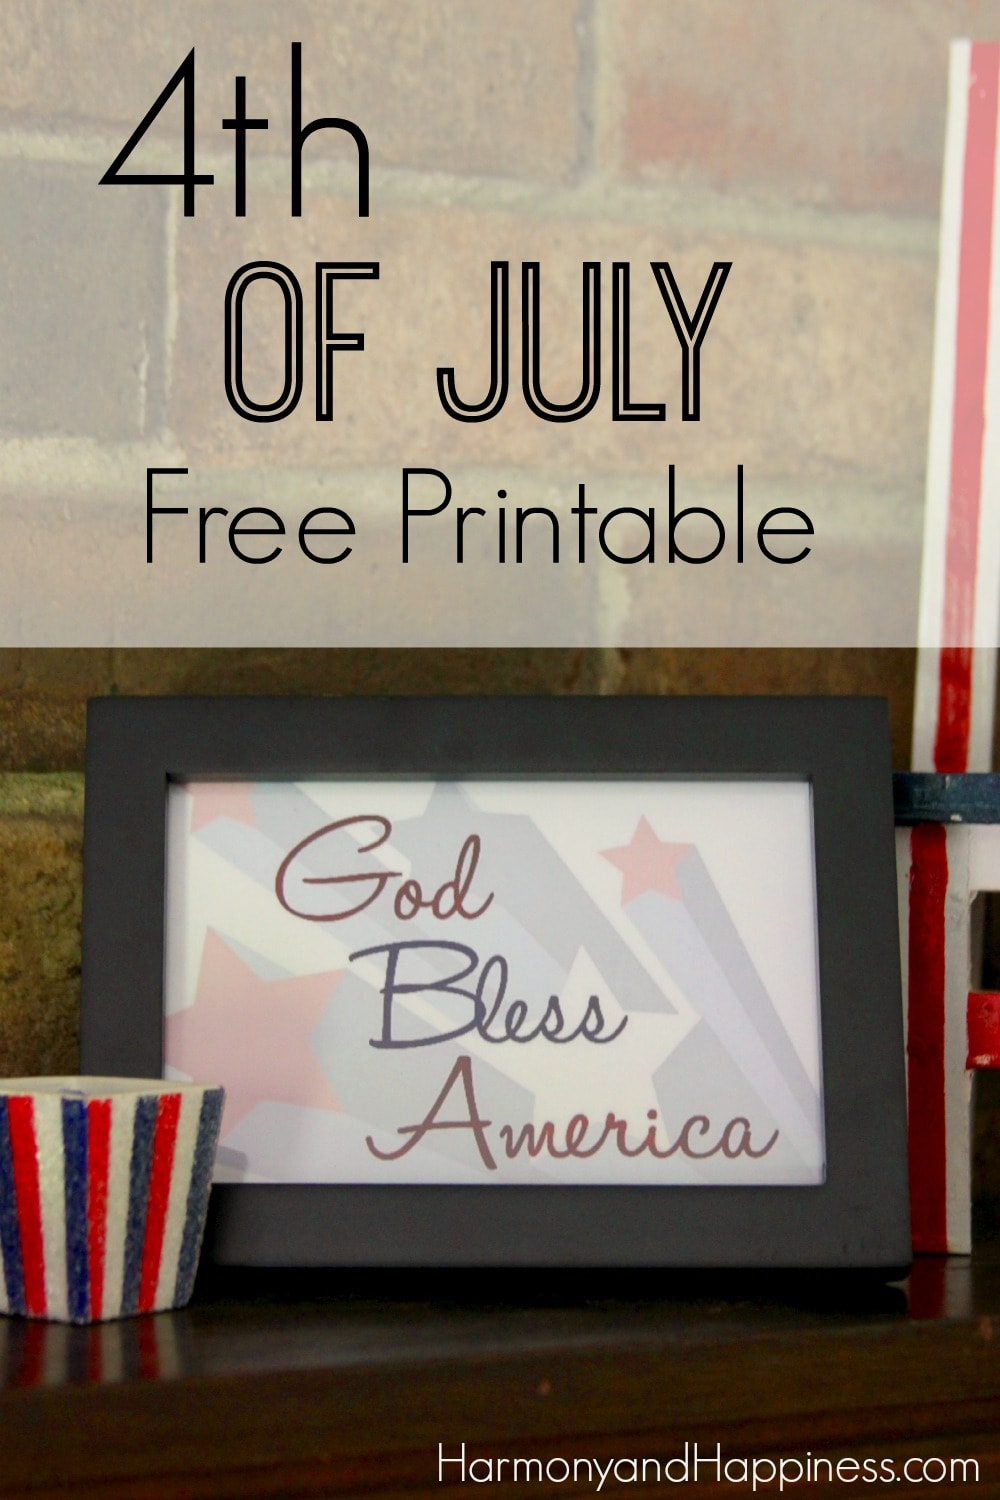 Fourth-of-July-Free-Printable